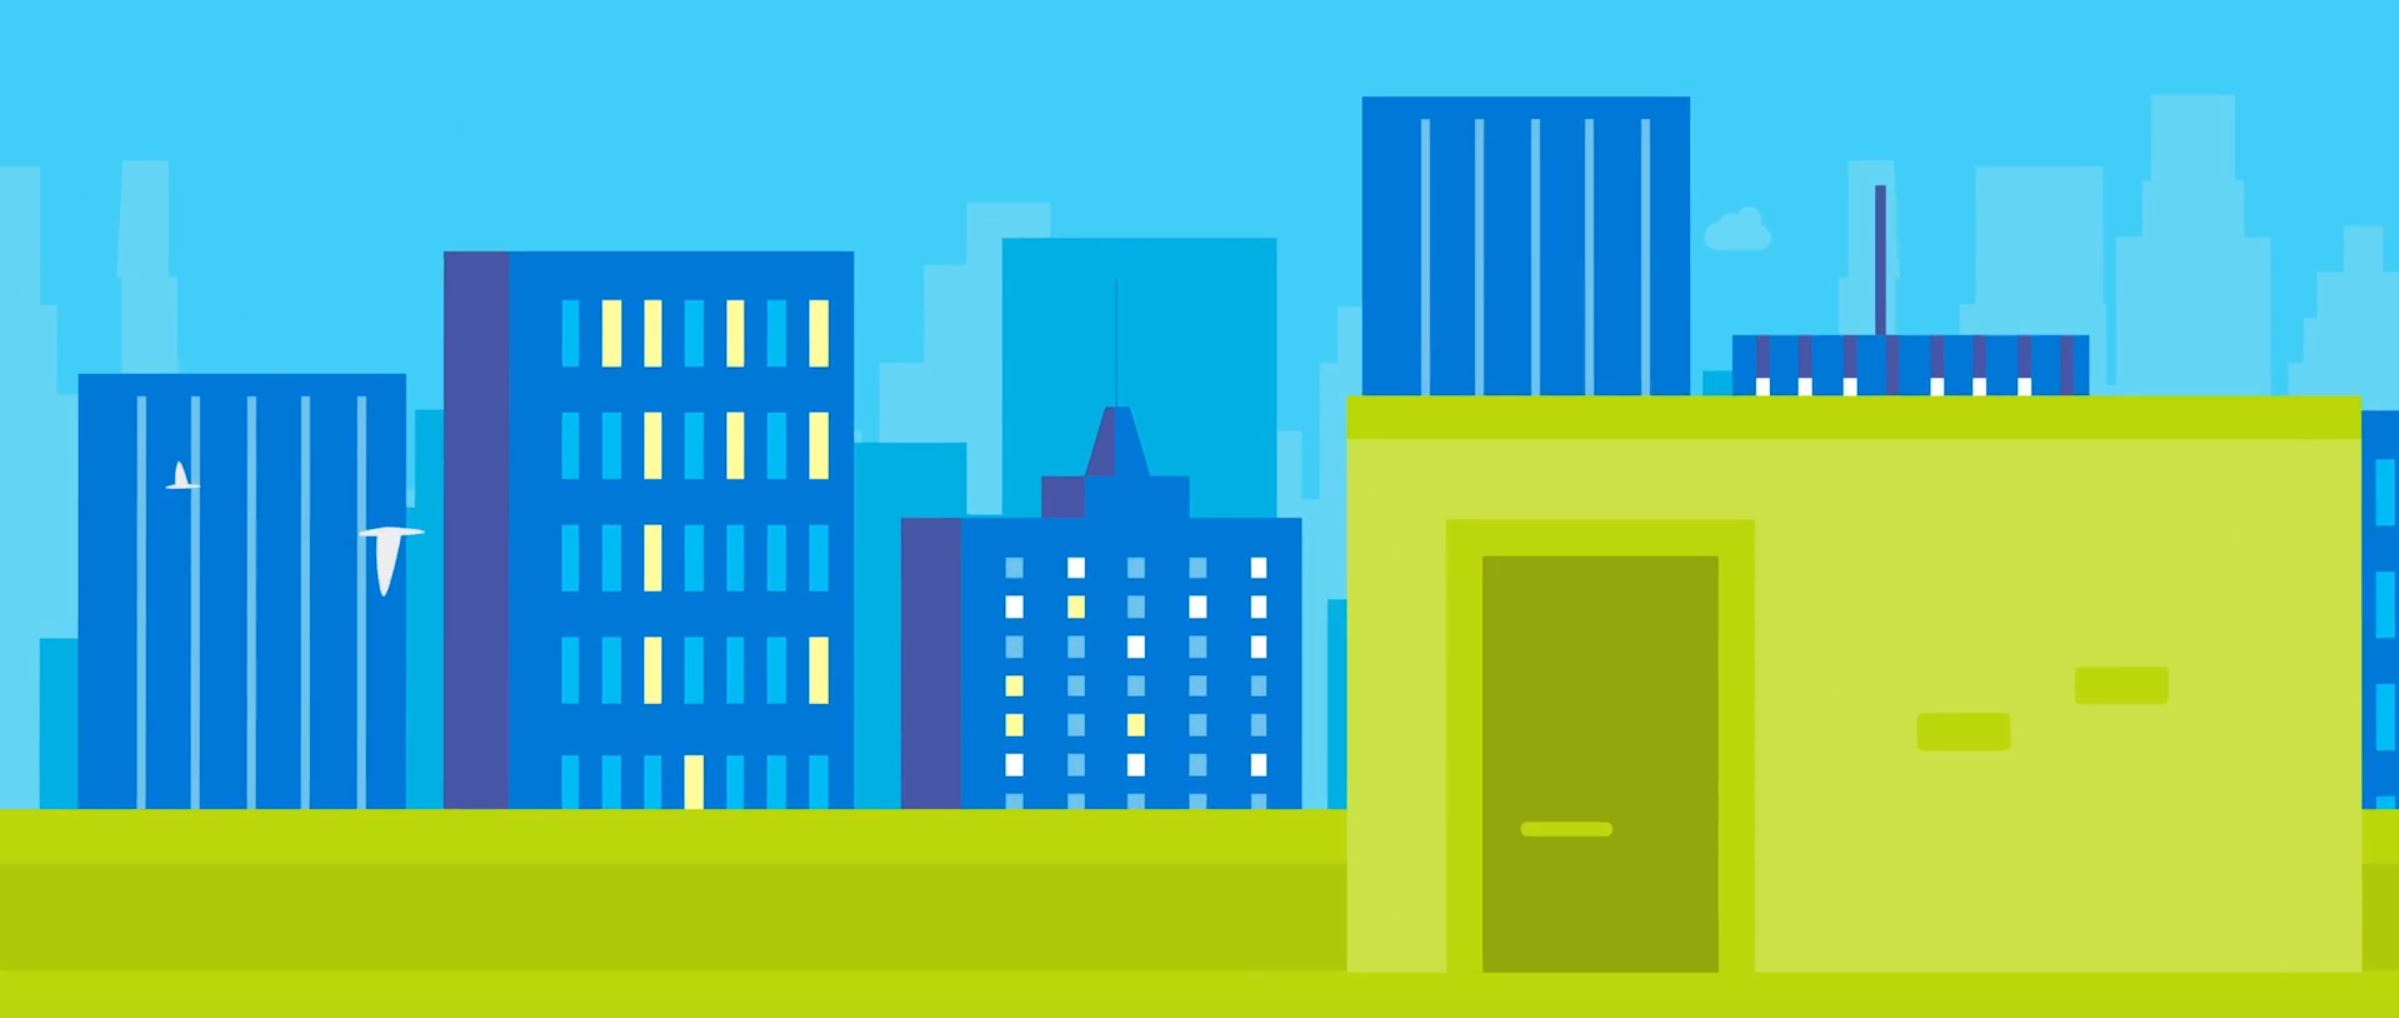 2D character animation image 11 for Microsoft Innovation - manufacturing project